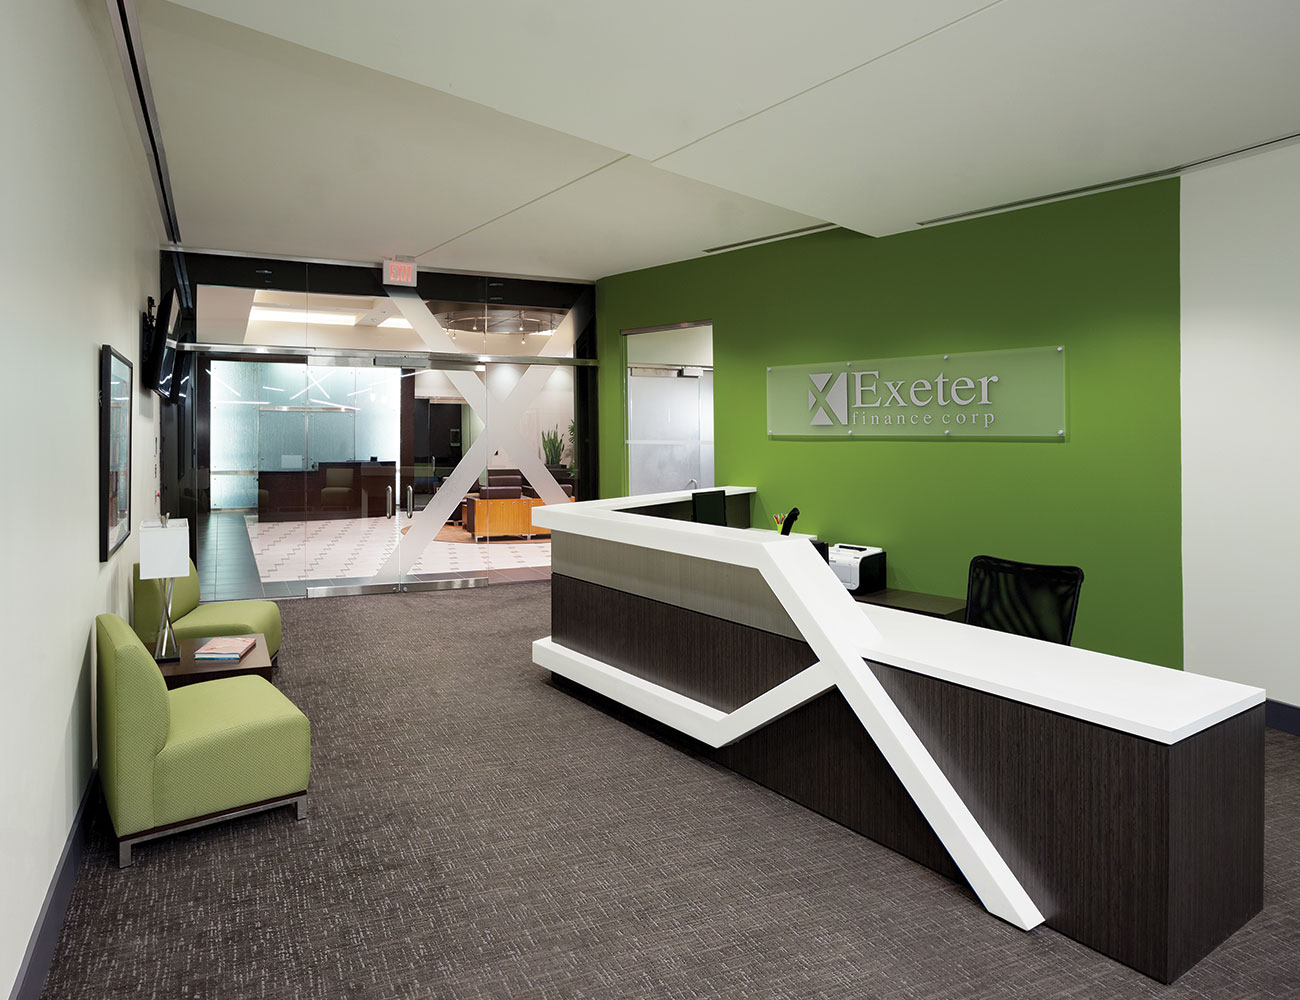 Corgan_Exeter_lobby_workplace